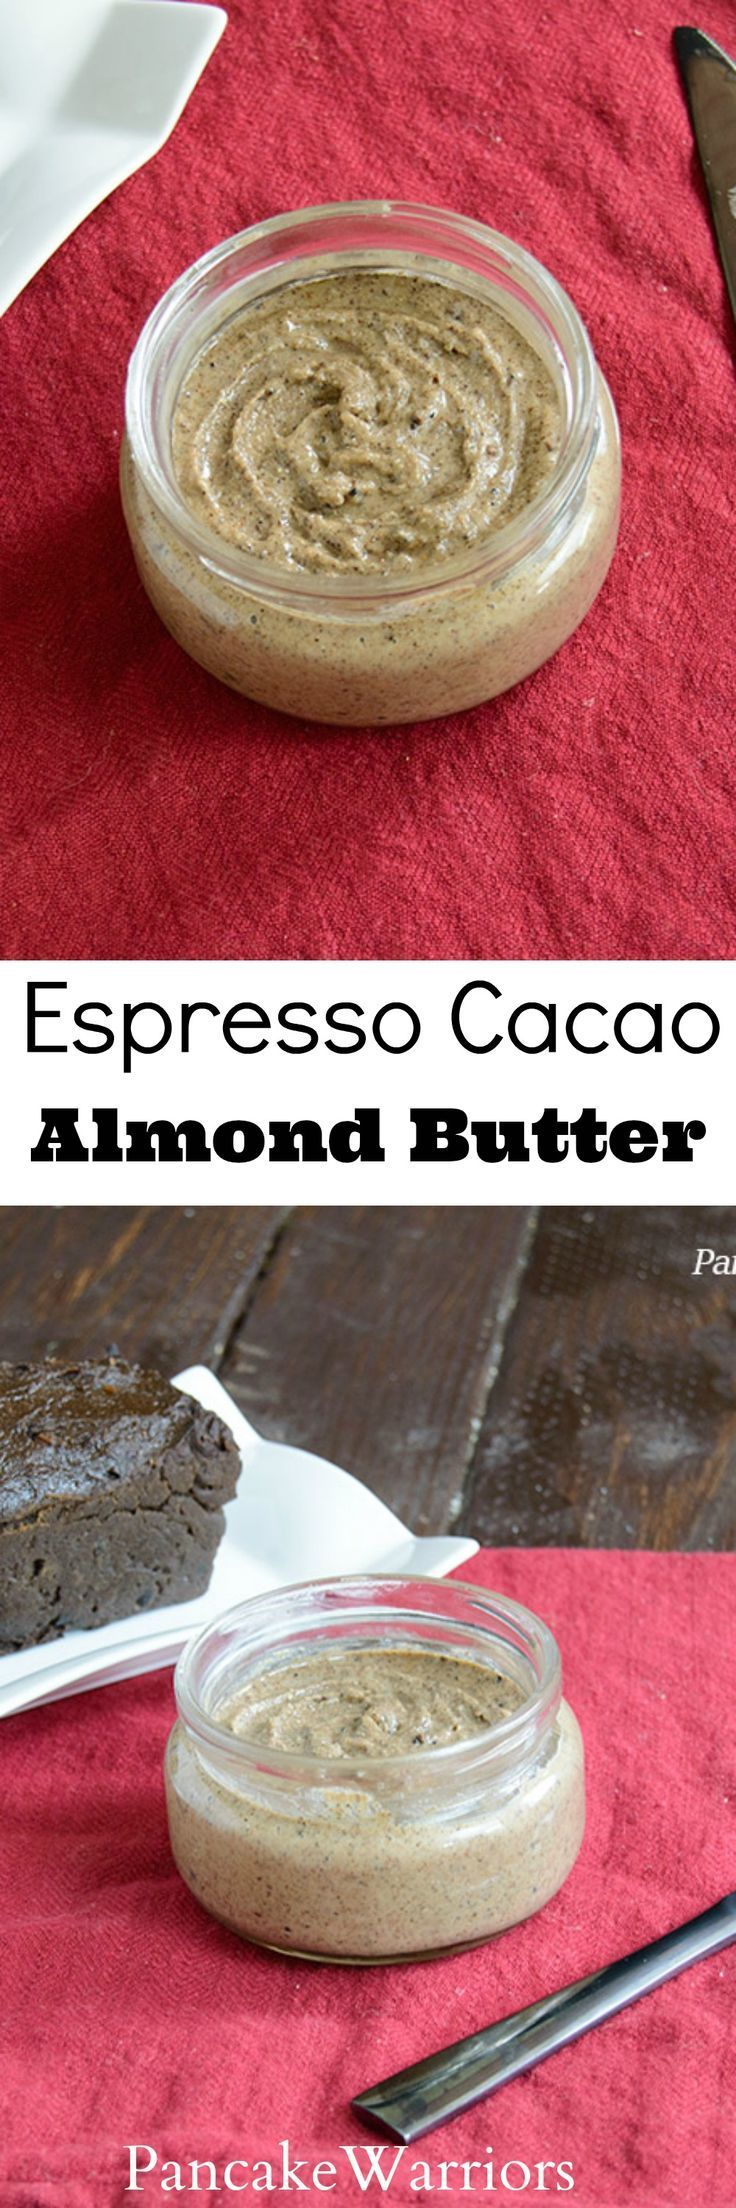 Espresso Cacao Almond Butter - Almond butter with an espresso kick! Easy homemade almond butter recipe, easy and inexpensive! Awesome on oatmeal, in smoothies or on banana!